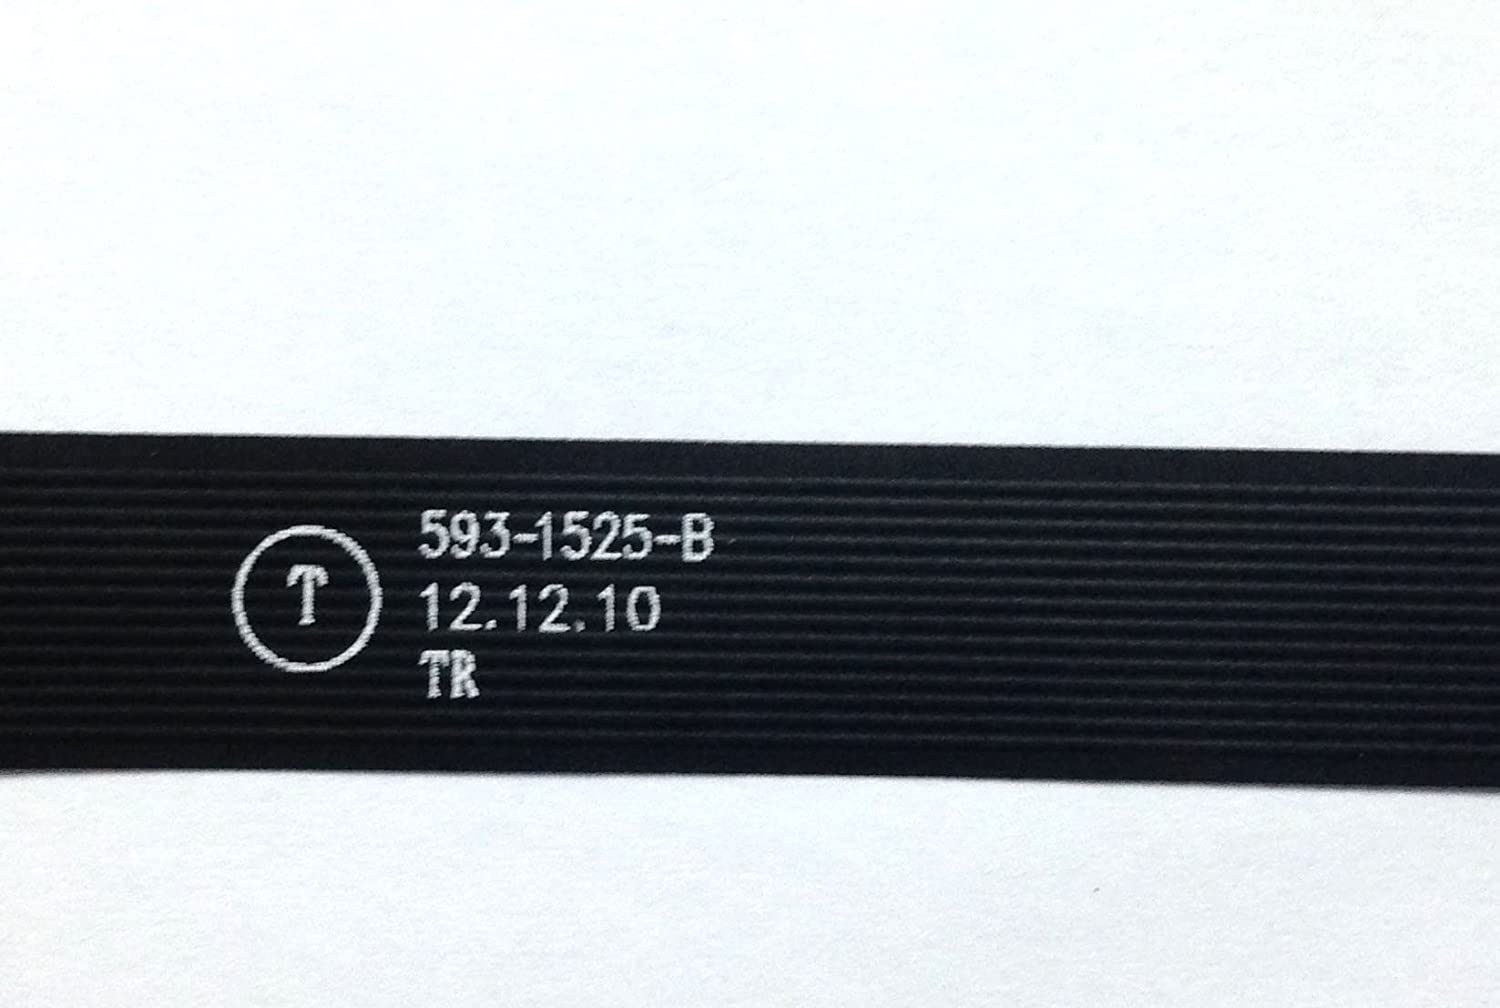 Ittecc Replacement TrackpadTrack Pad Flex Cable 923-0120 for MacBook Air 11 A1370 593-1525-B A1465 2012 593-1525